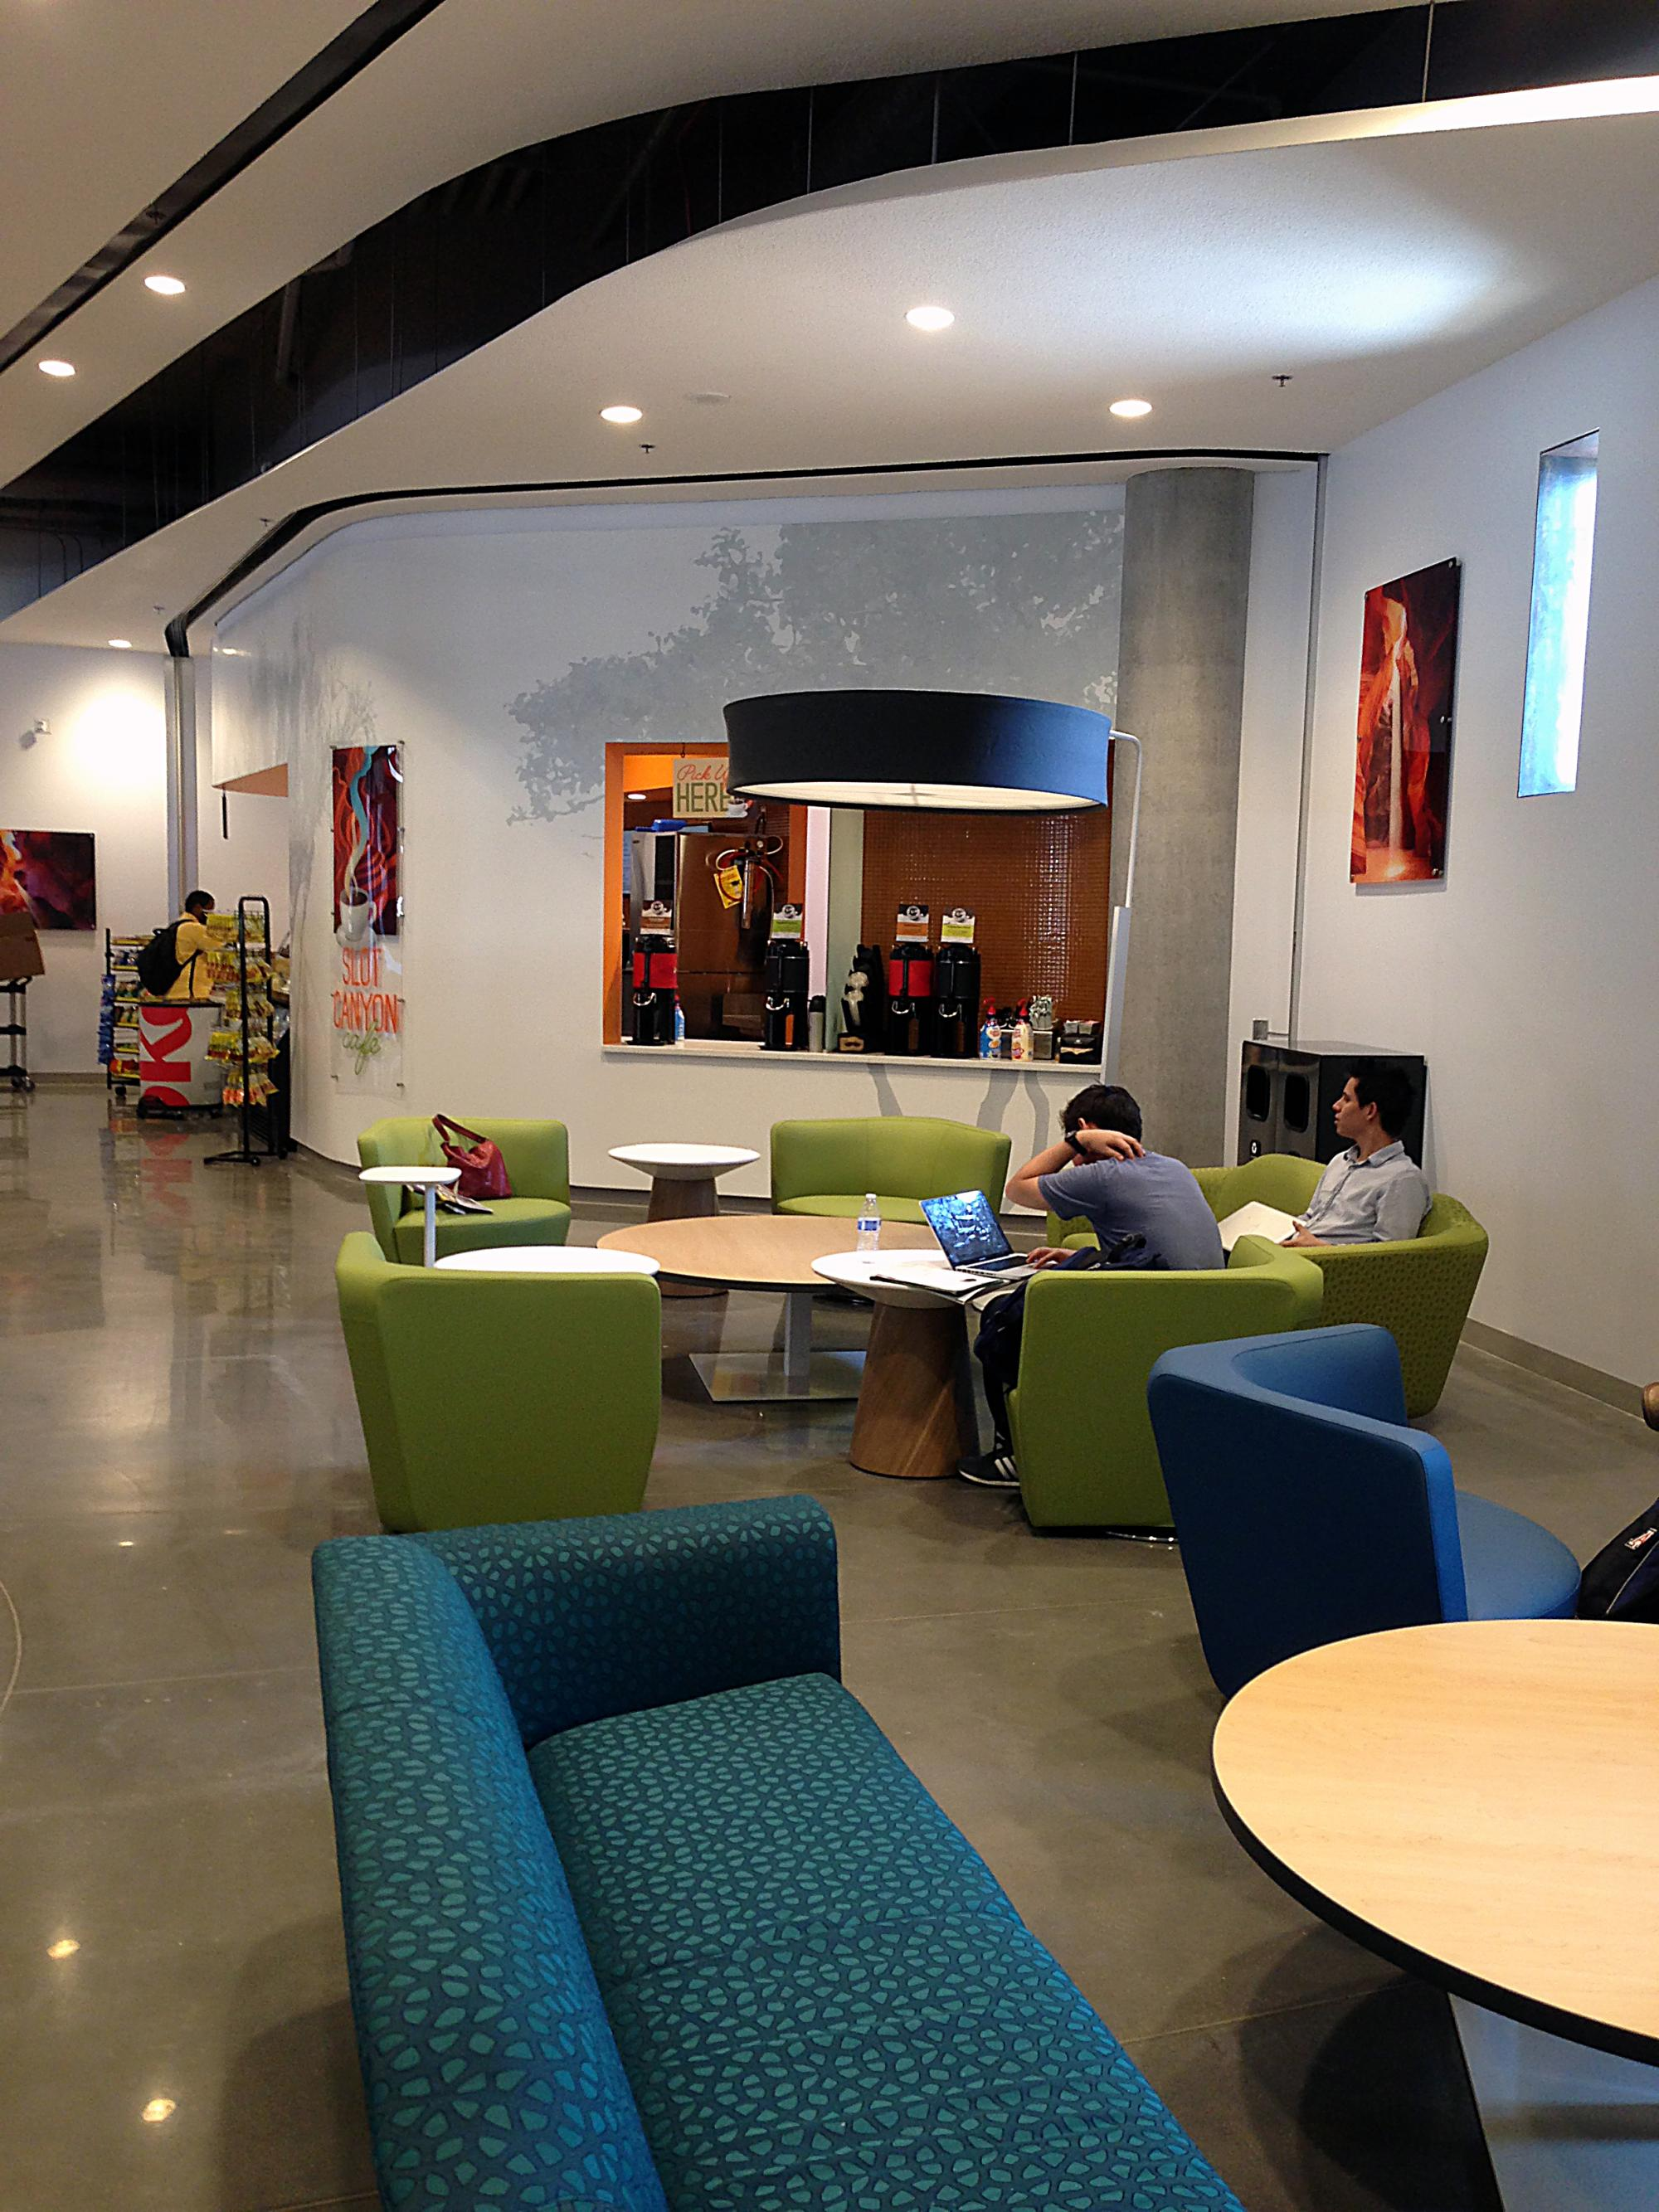 The Student Union designed custom wallpaper with Arizona mesquite and palo verde trees and installed slot canyon photography to enhance the setting at the Slot Canyon Café.